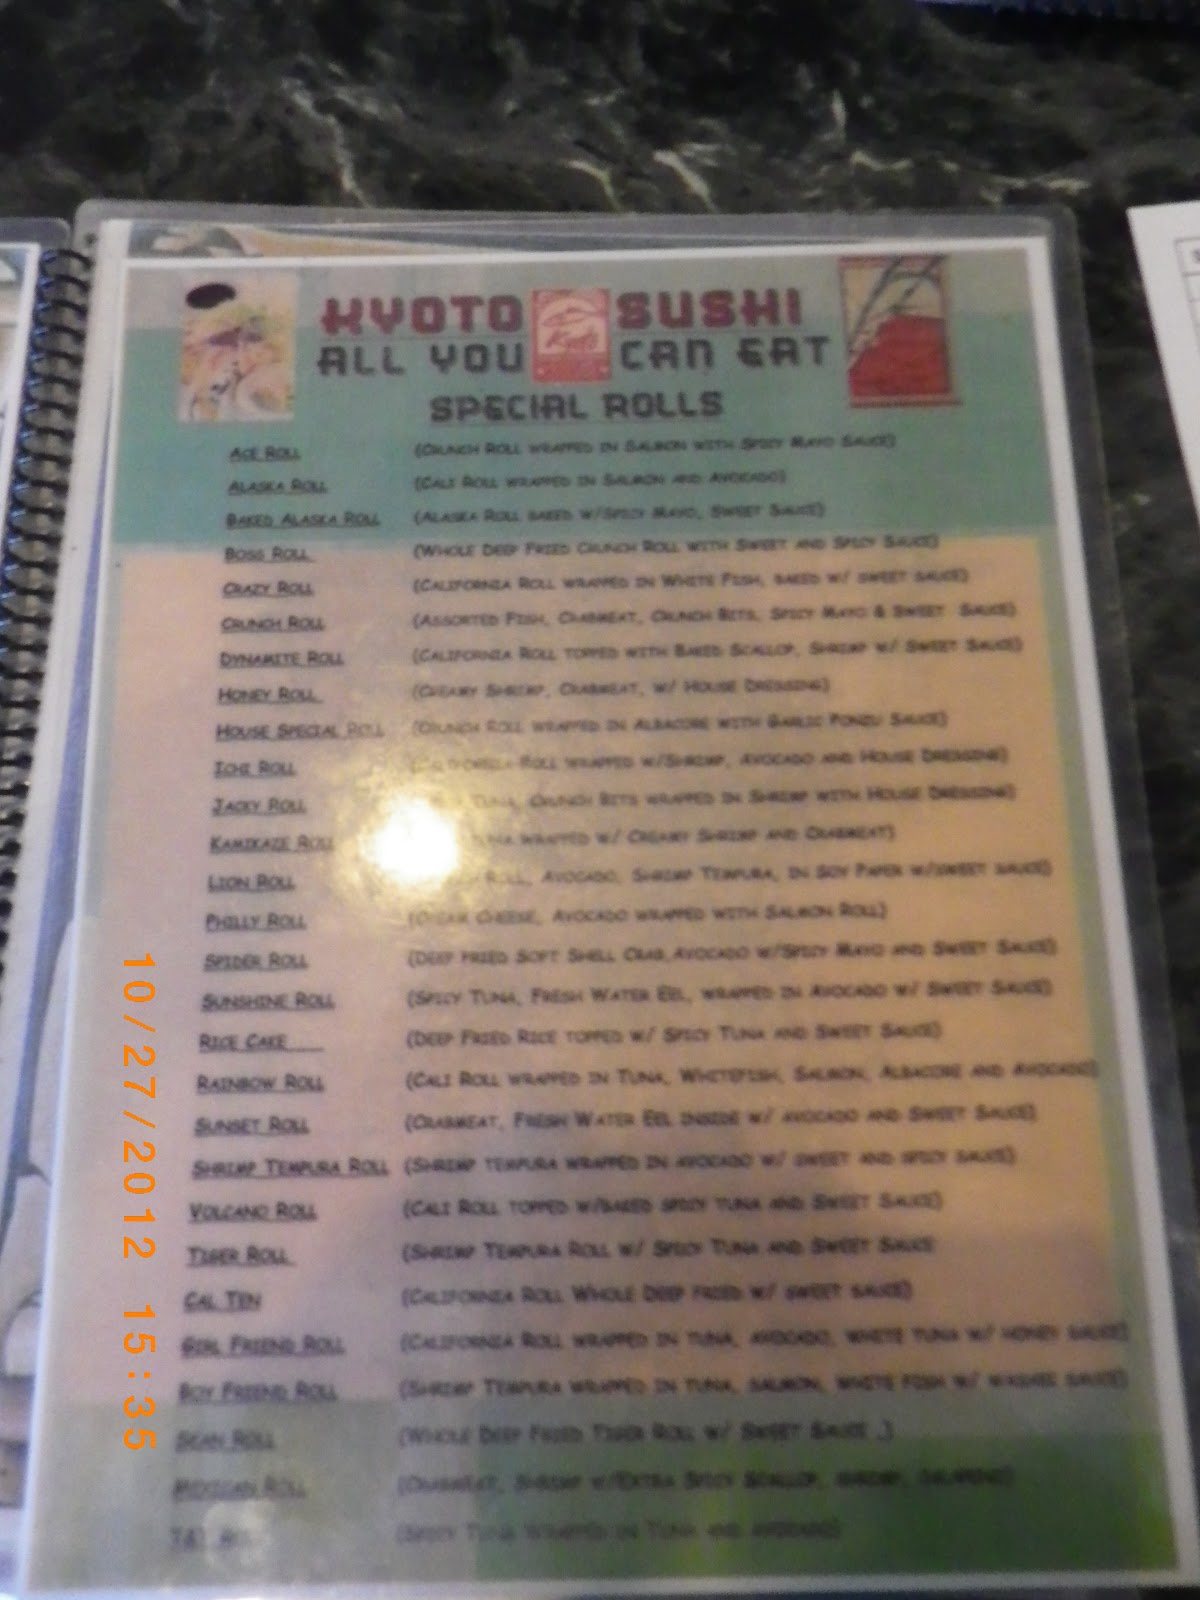 Kyoto sushi northridge coupon : Coupon codes for light in the box ...